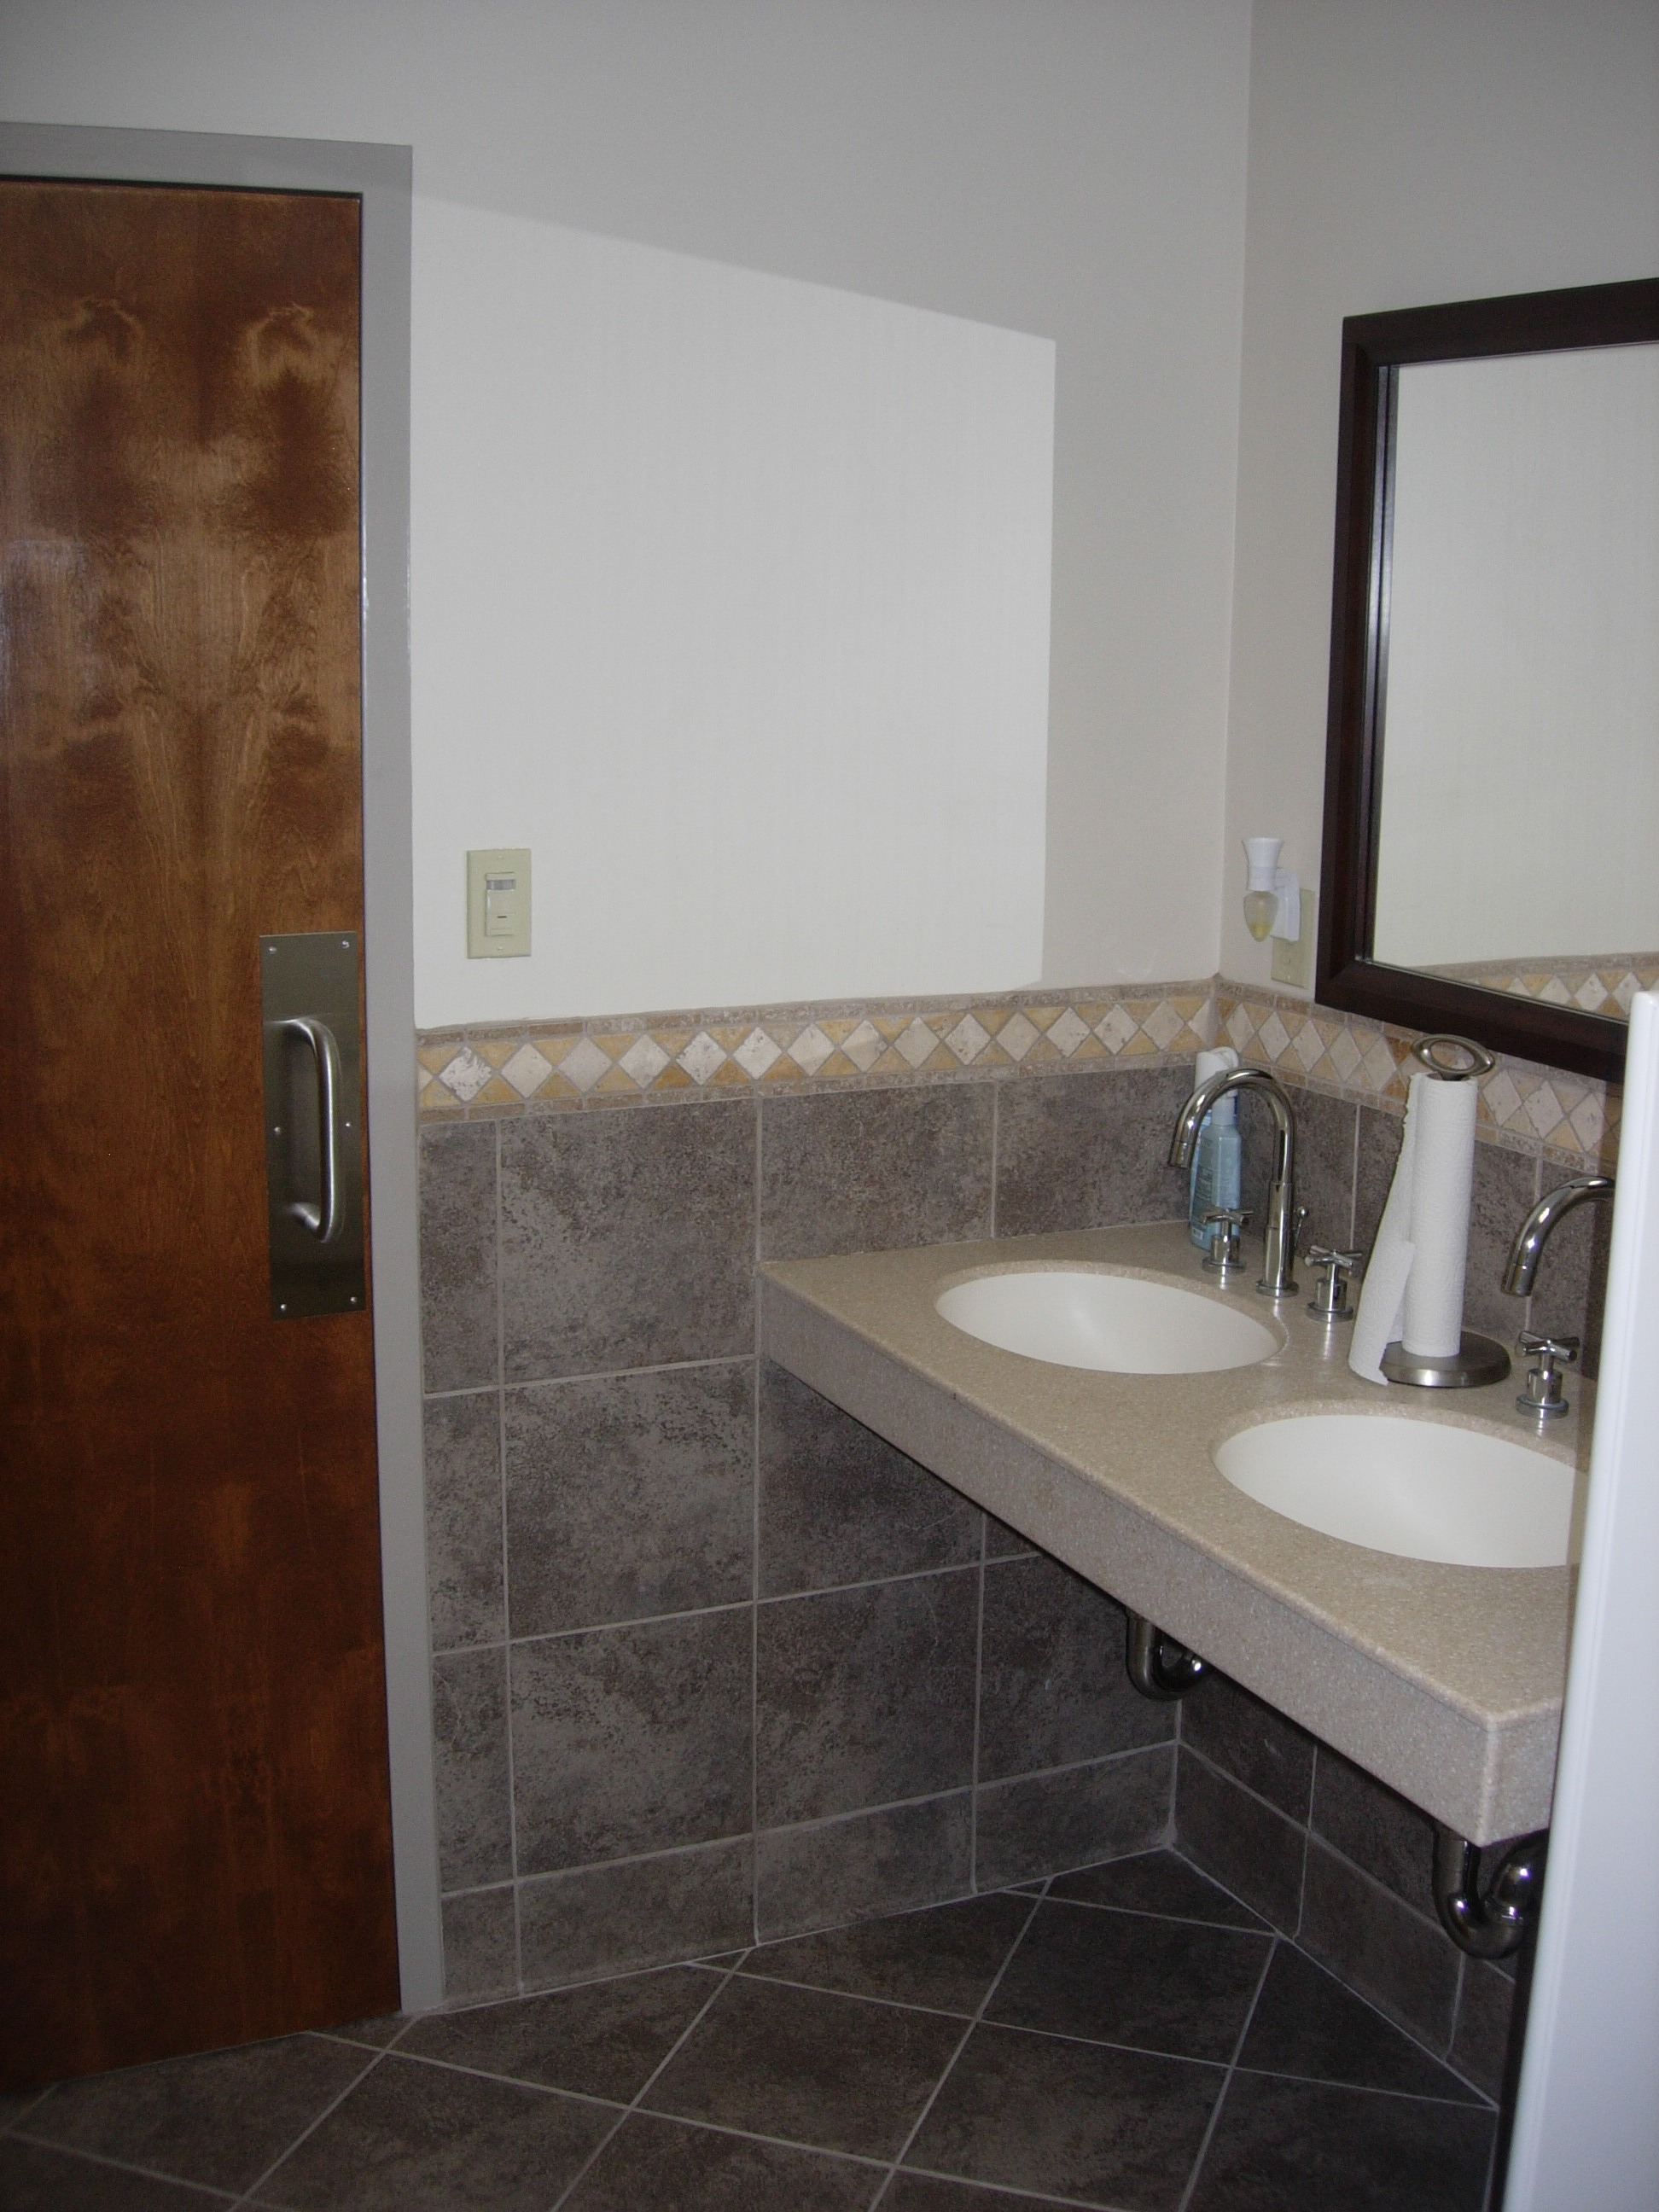 Interior Restroom Remodel grace baptist church restroom remodel easterday construction mens room sinks counter